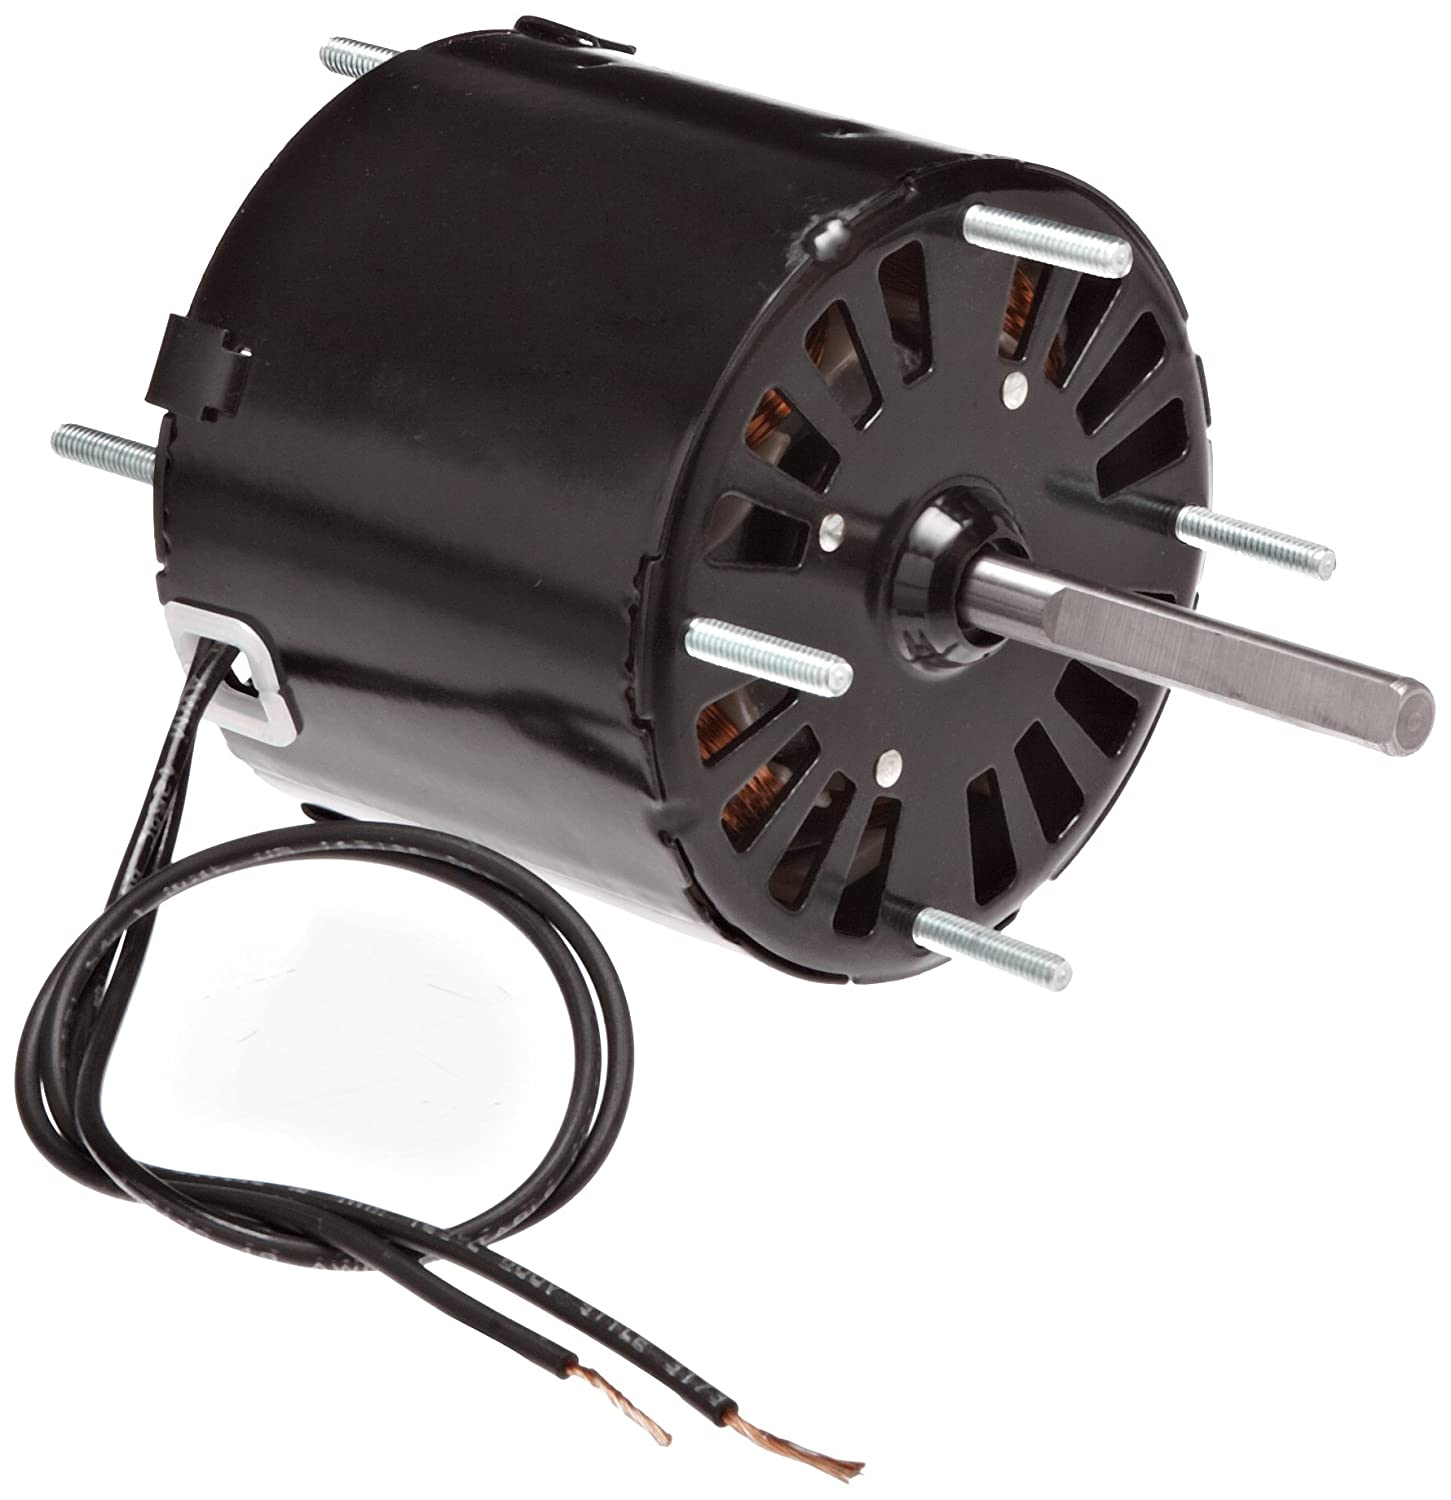 Fasco D188 3.3-Inch Frame Open Ventilated Shaded Pole General Purpose Motor with  Sleeve Bearing, 1/20HP, 1500RPM, 230V, 60Hz, 0.9 Amps, CW Rotation